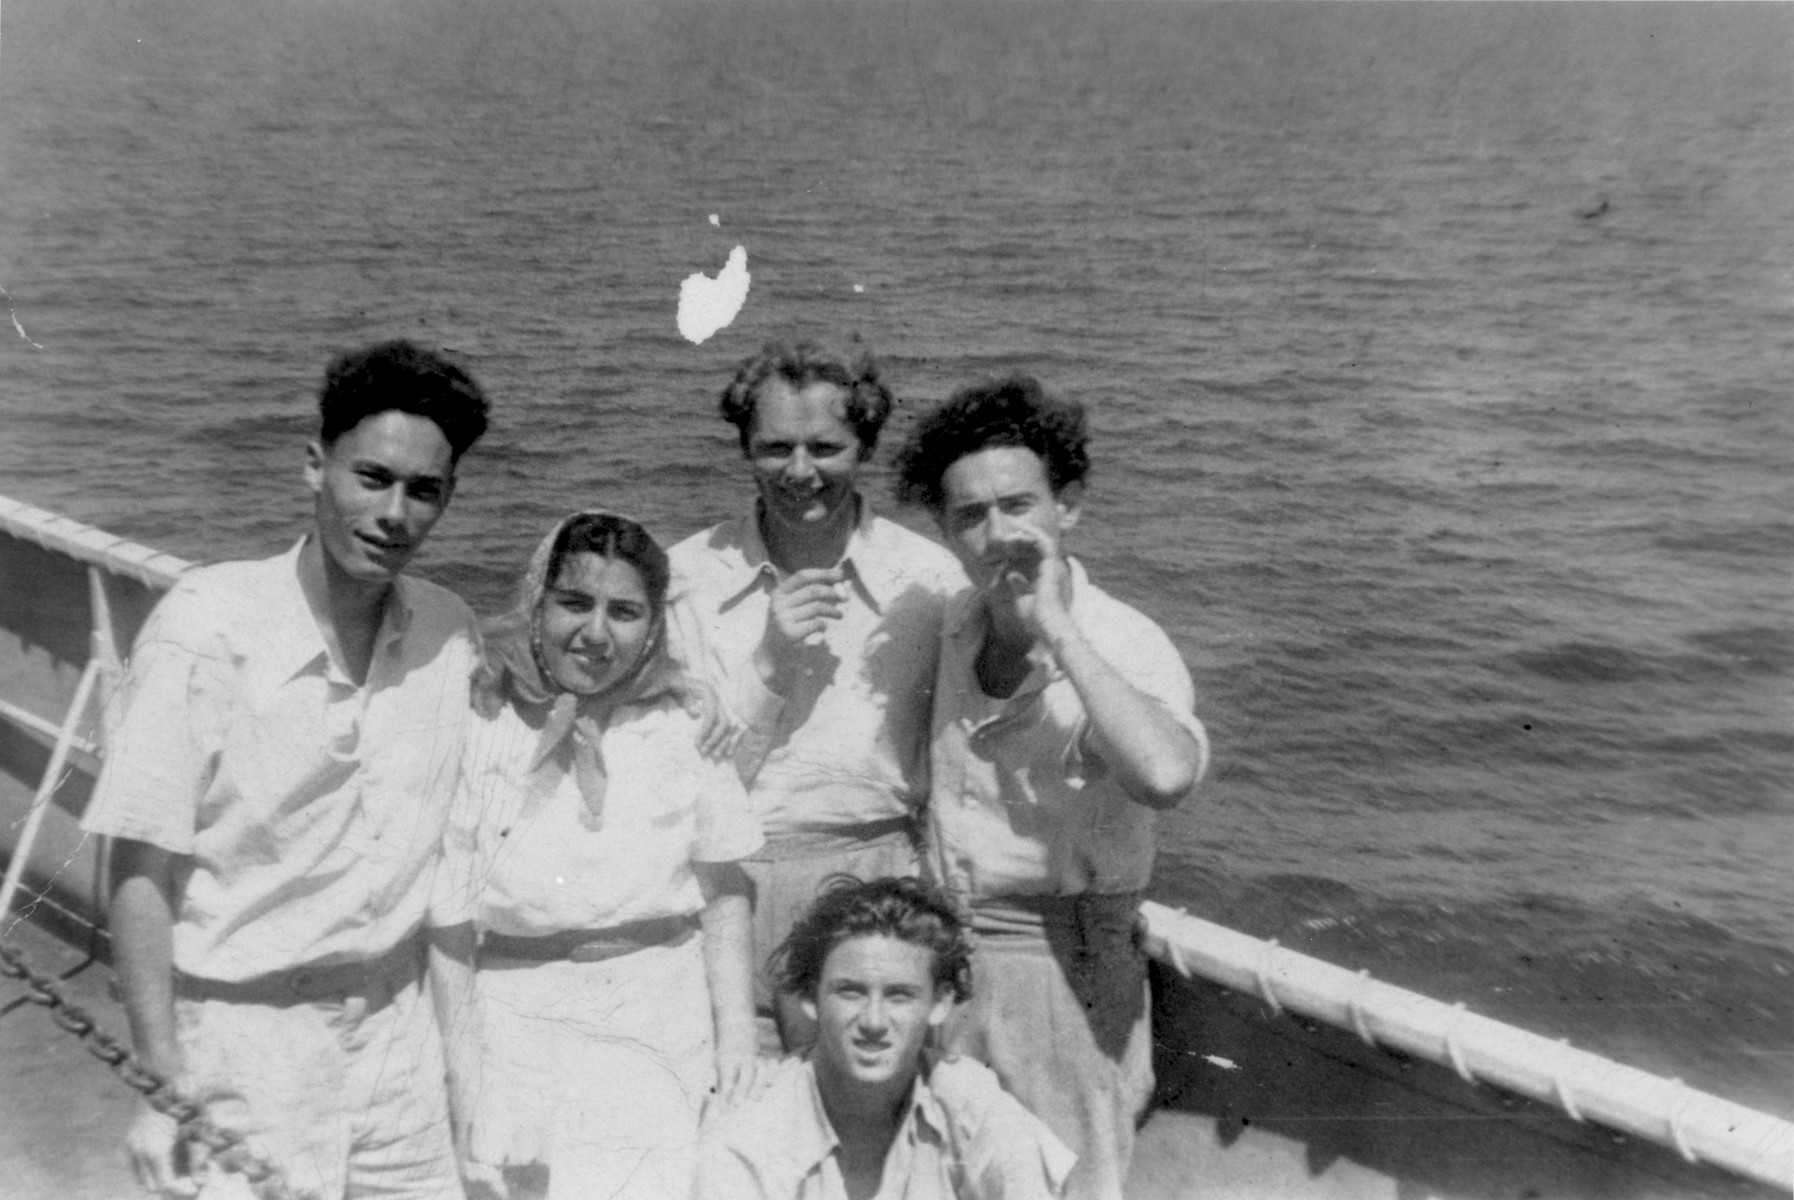 John Stanley Grauel poses on the deck of the SS Marine Carp with friends and fellow journalists, while on his way back to the United States after serving on the crew of the Exodus 1947.